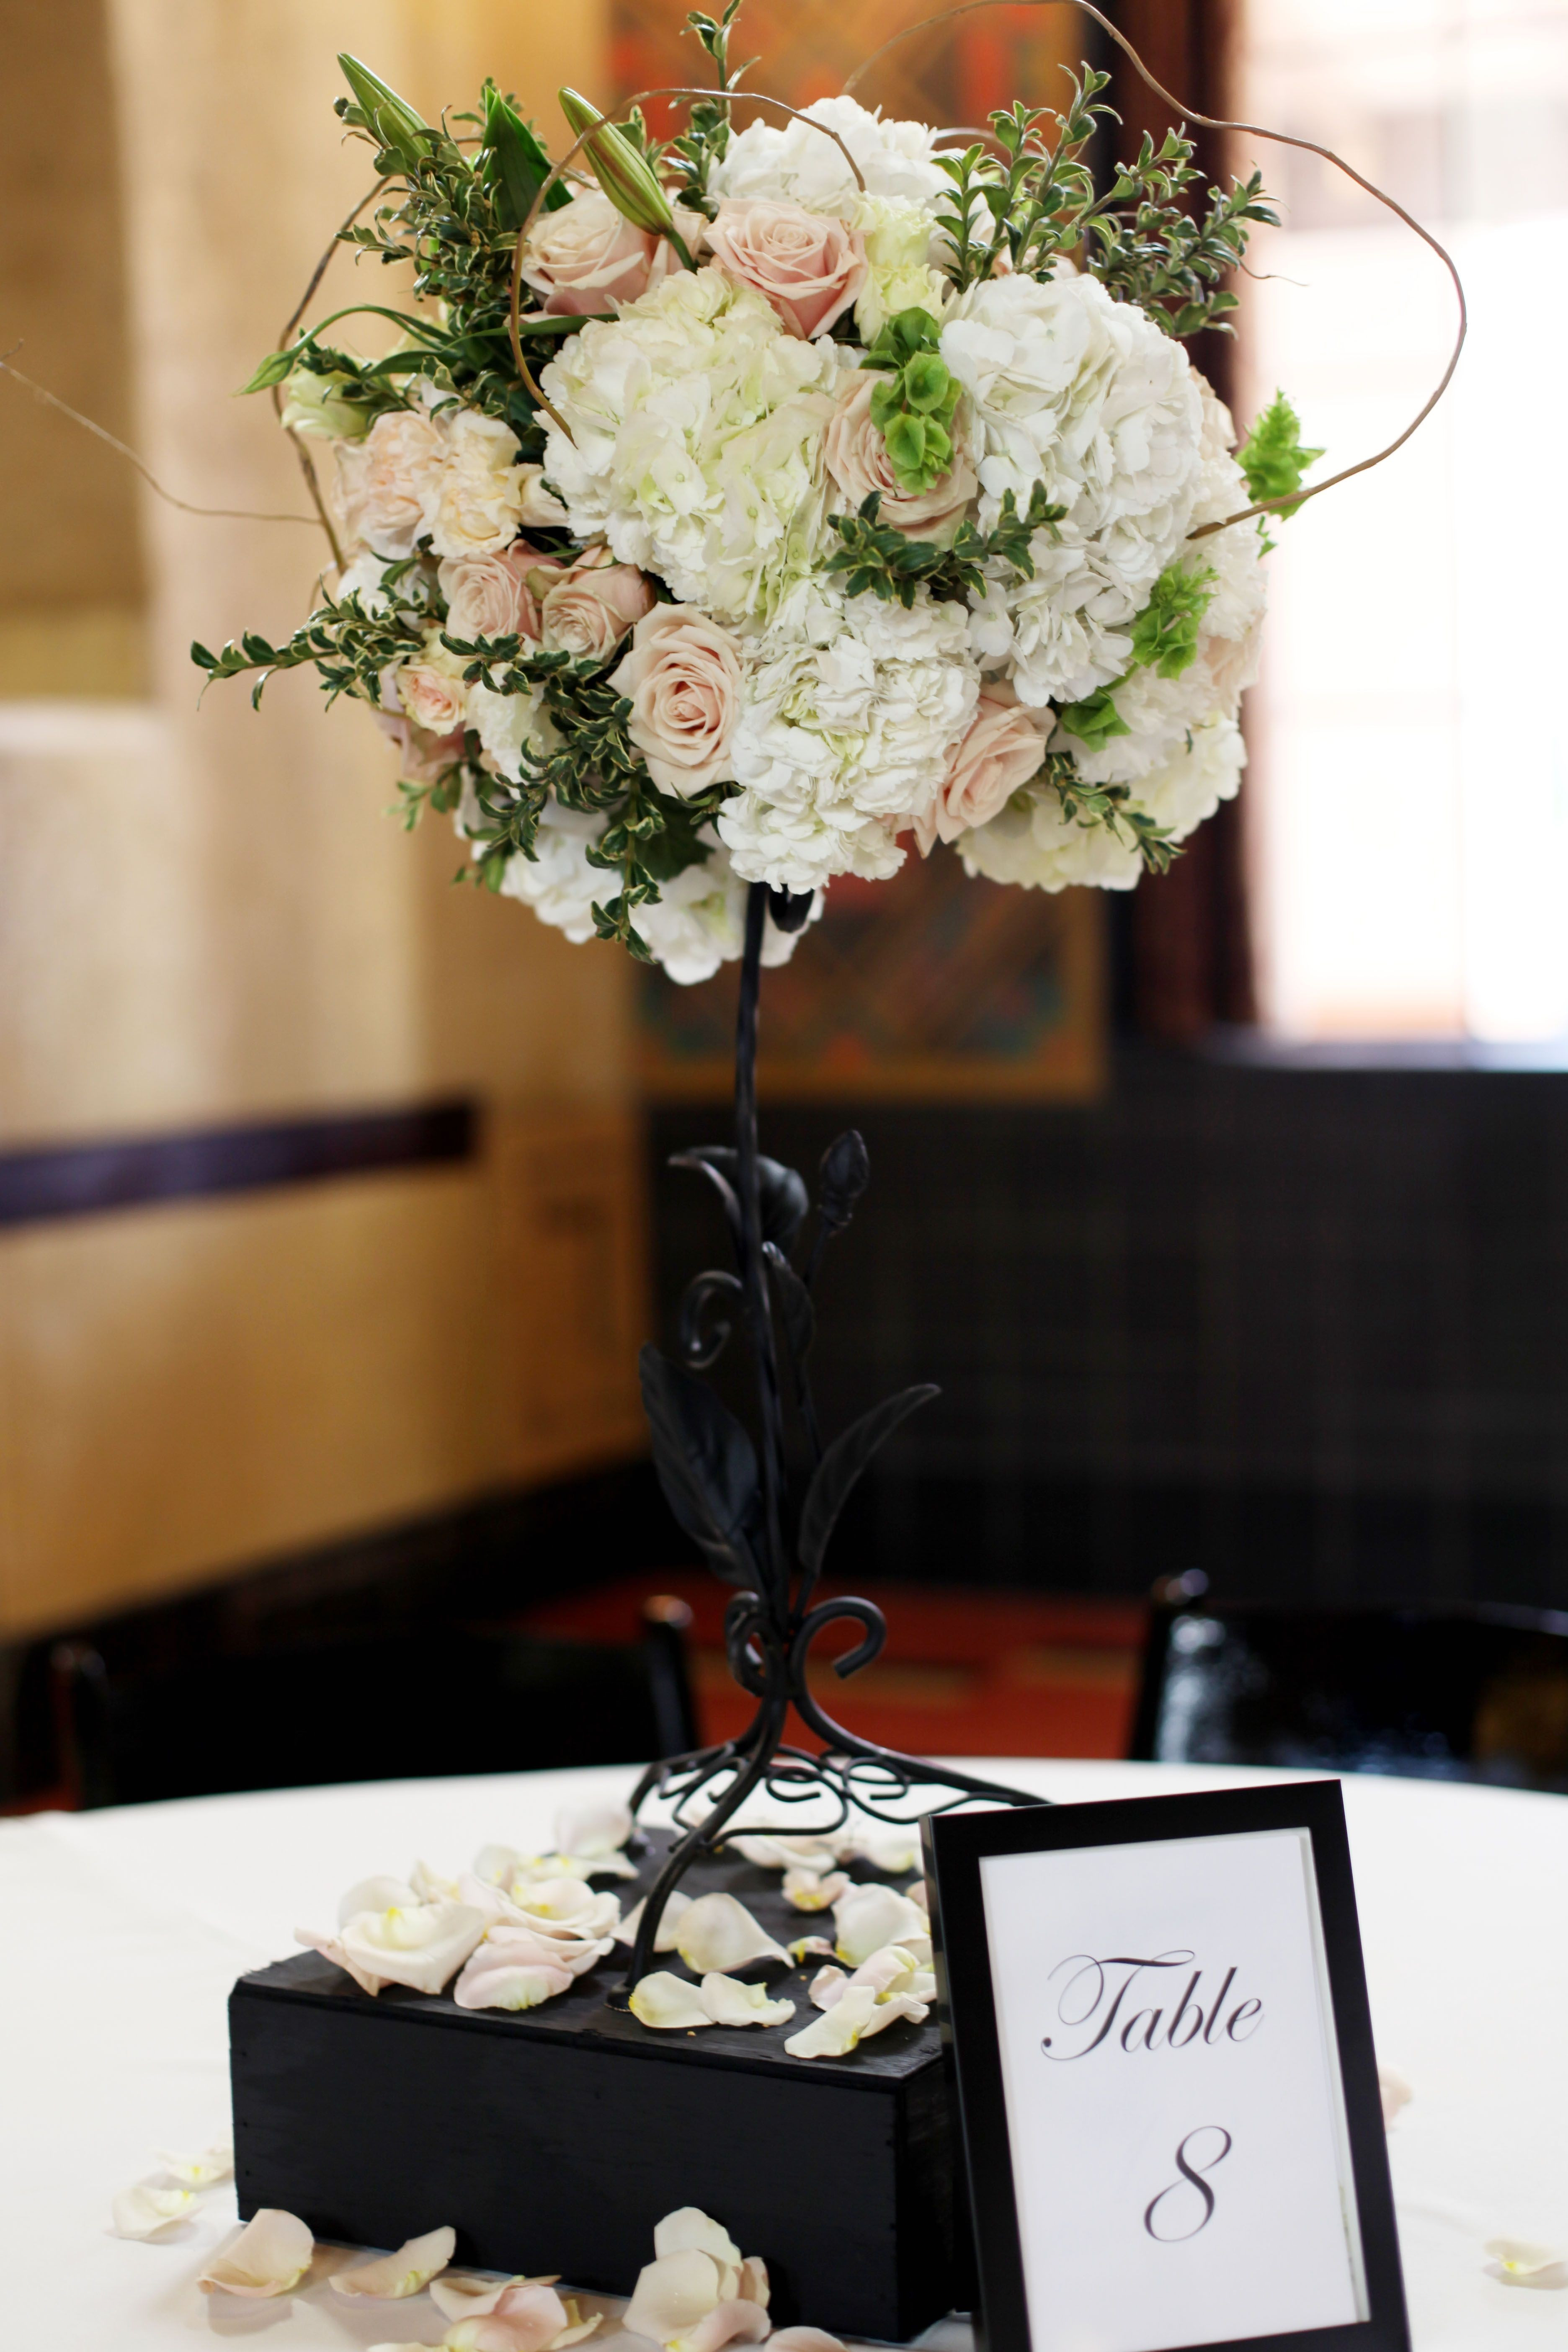 tall silk flower arrangements in vases of decorative branches for weddings awesome tall vase centerpiece ideas within decorative branches for weddings luxury union station the little branch of decorative branches for weddings decorative